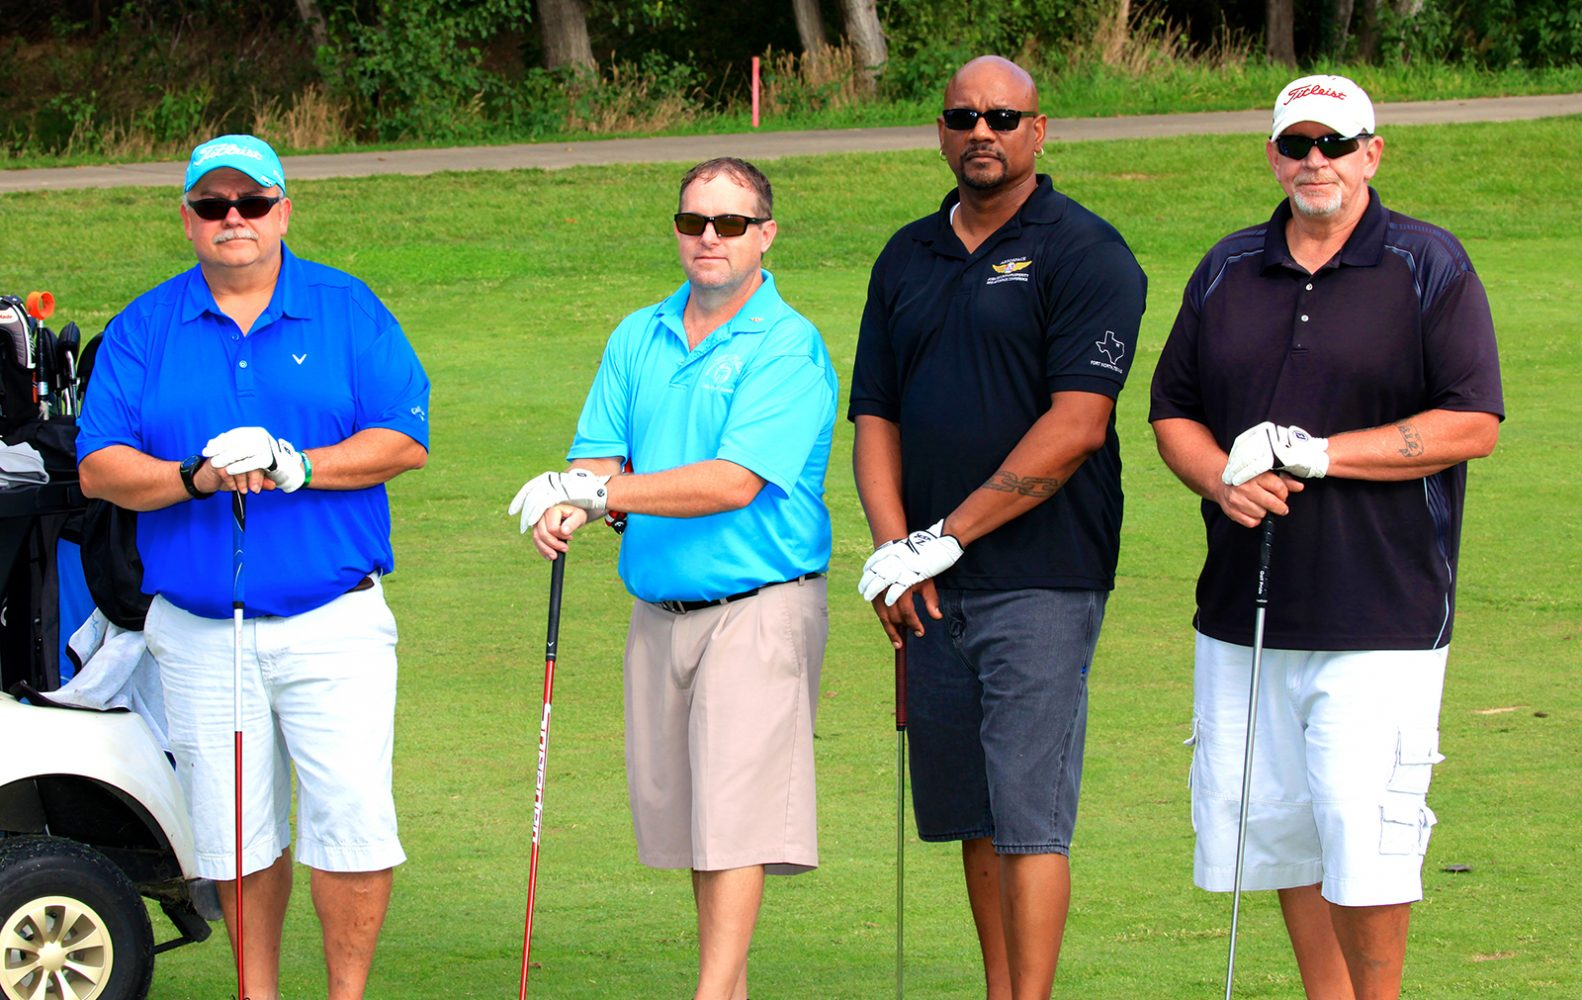 10_04_2018_3_7th Annual Robert Martinez Jr. Invitational Golf Fundraiser